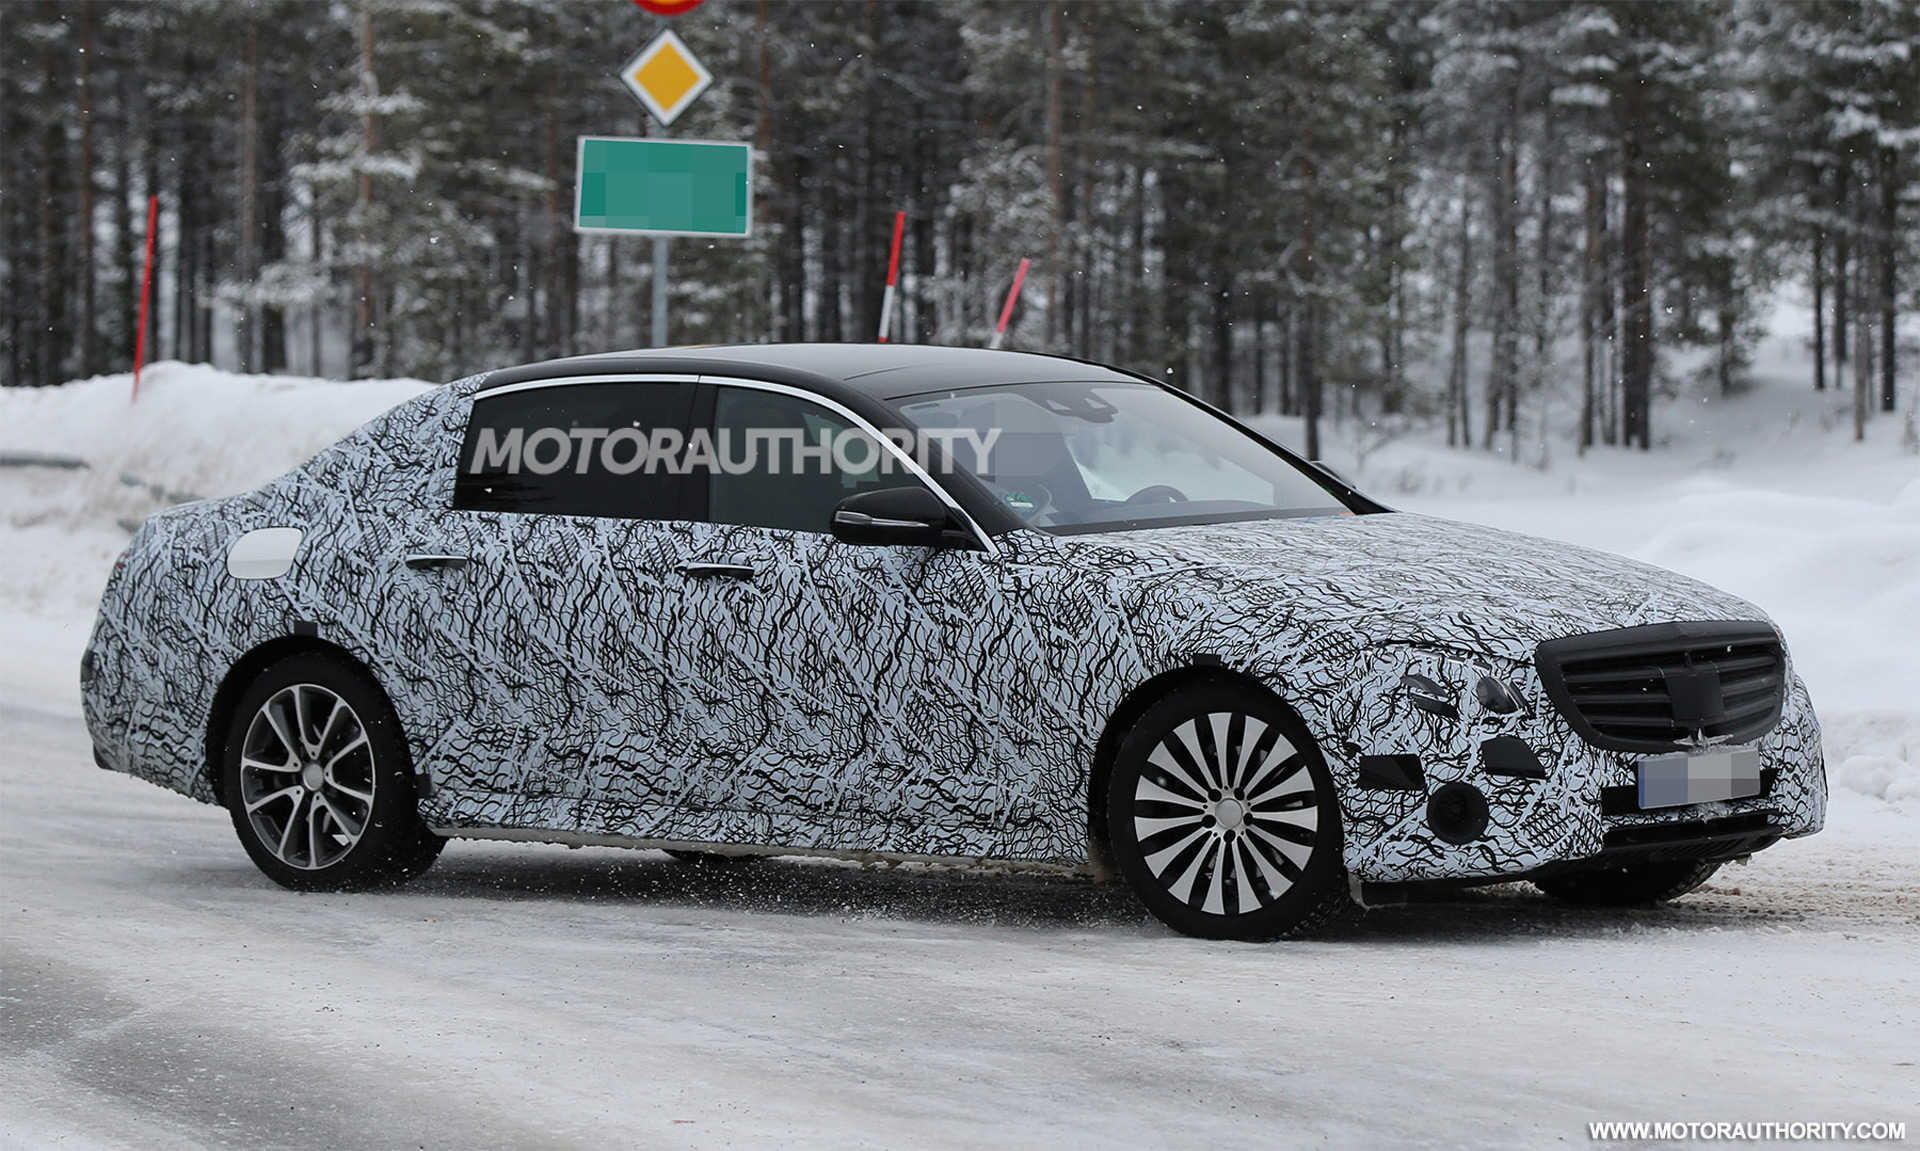 77 New Spy Shots Mercedes E Class First Drive